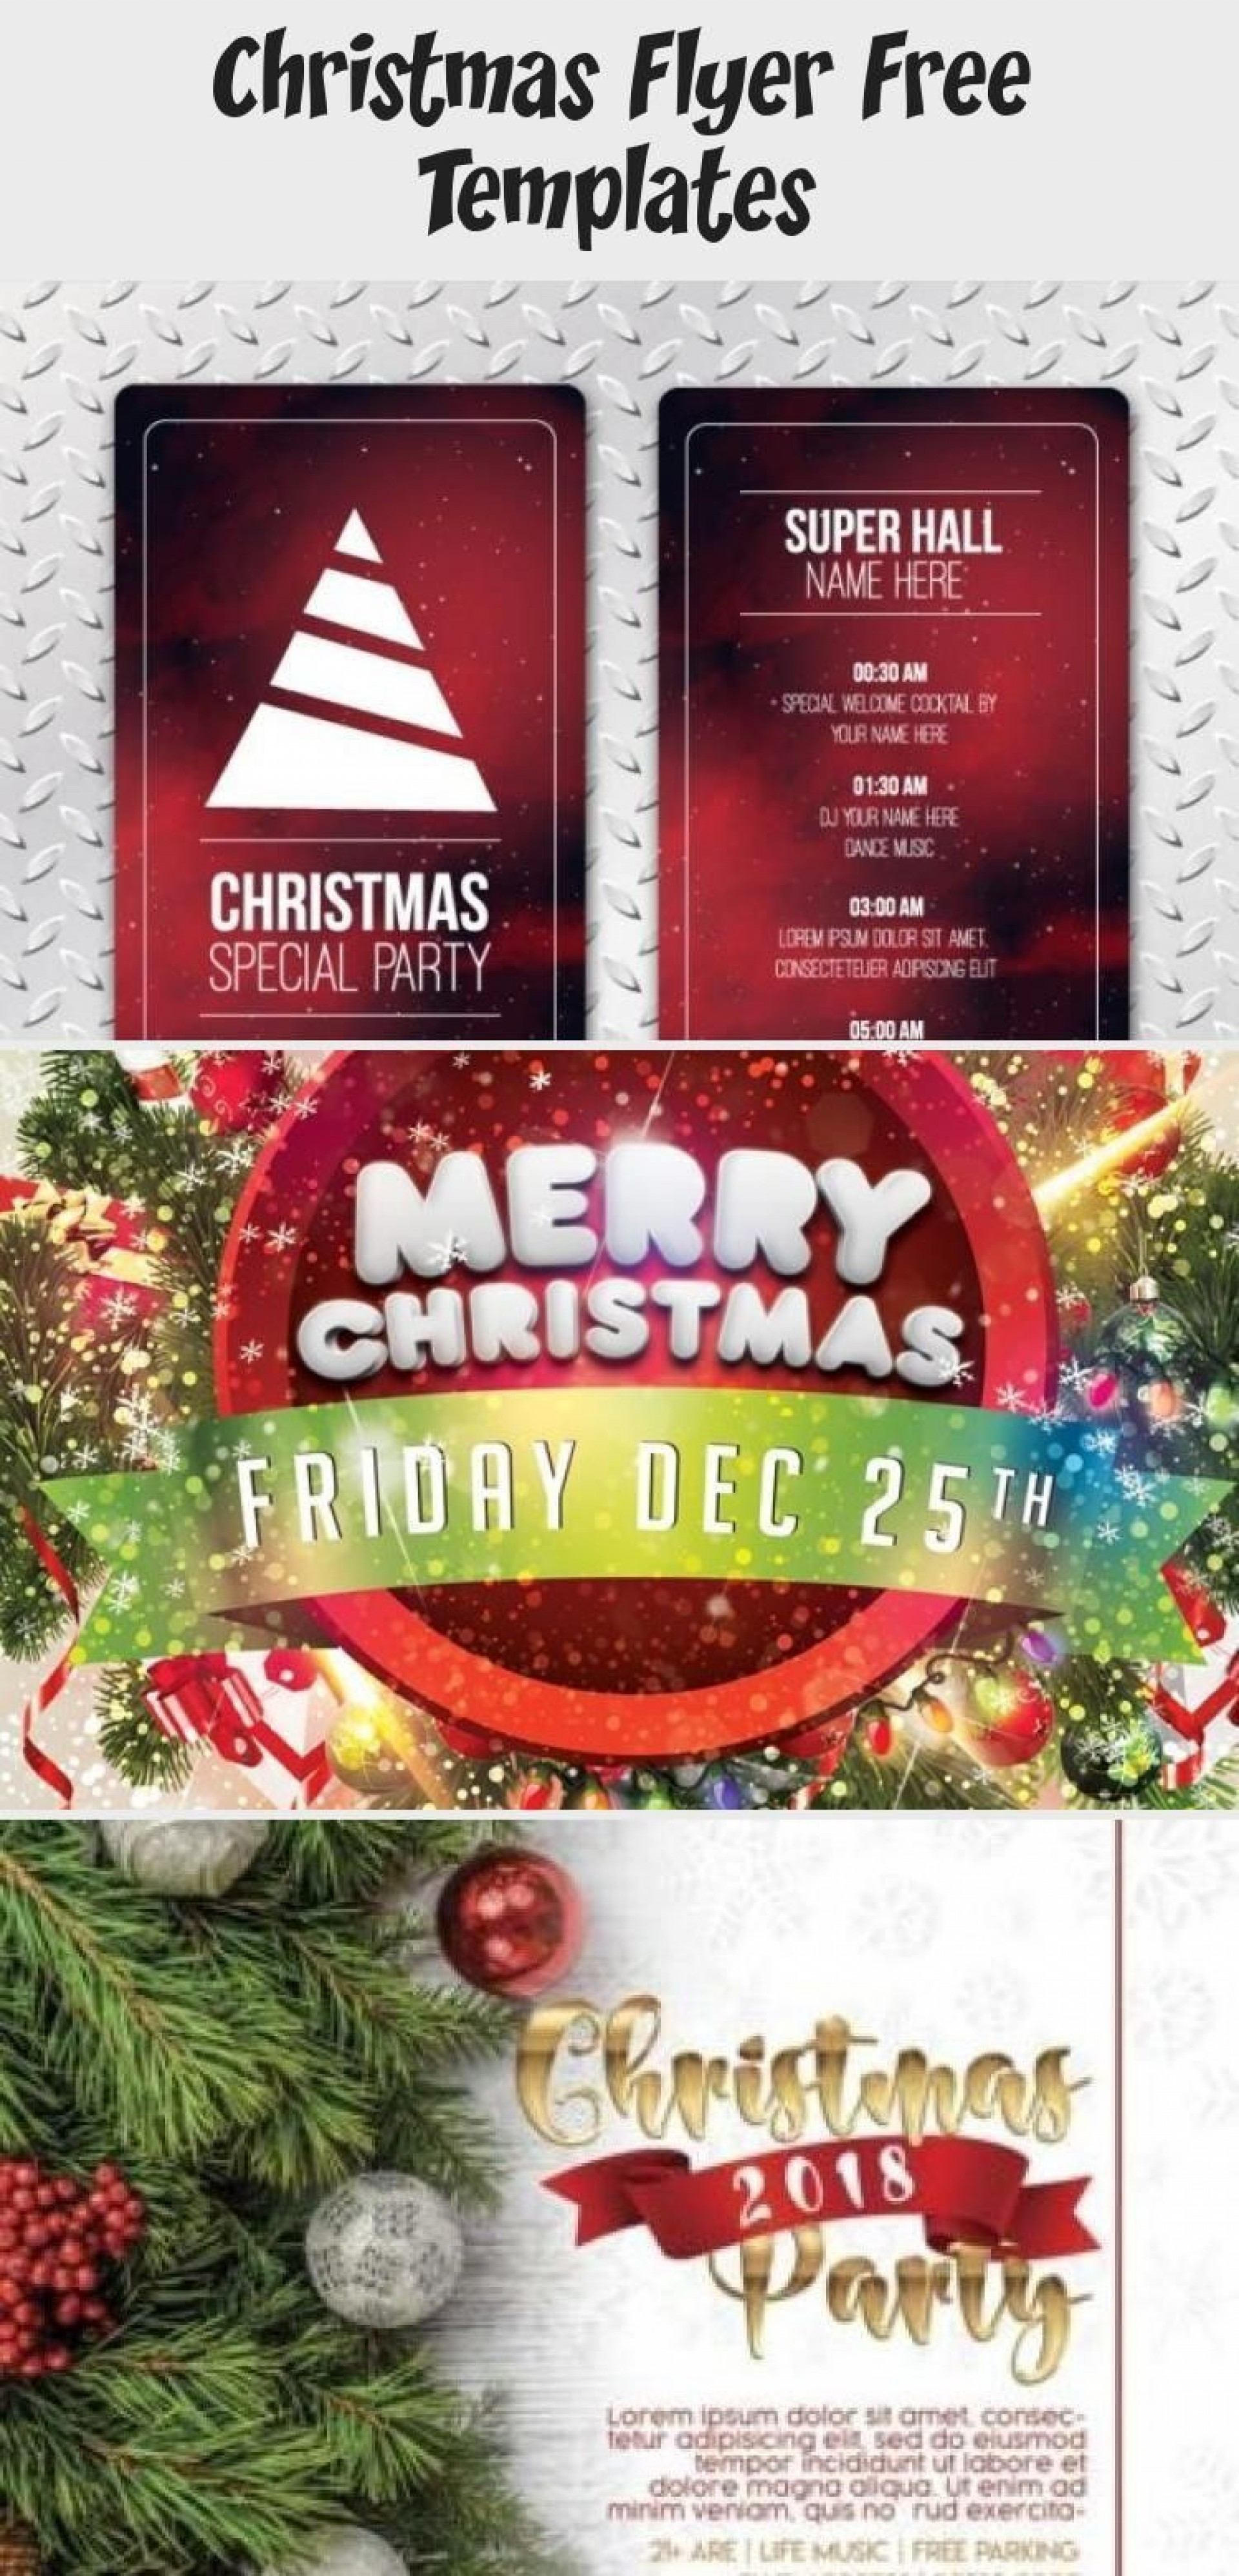 003 Marvelou Christma Flyer Template Free Picture  Party Invitation Psd Download1920